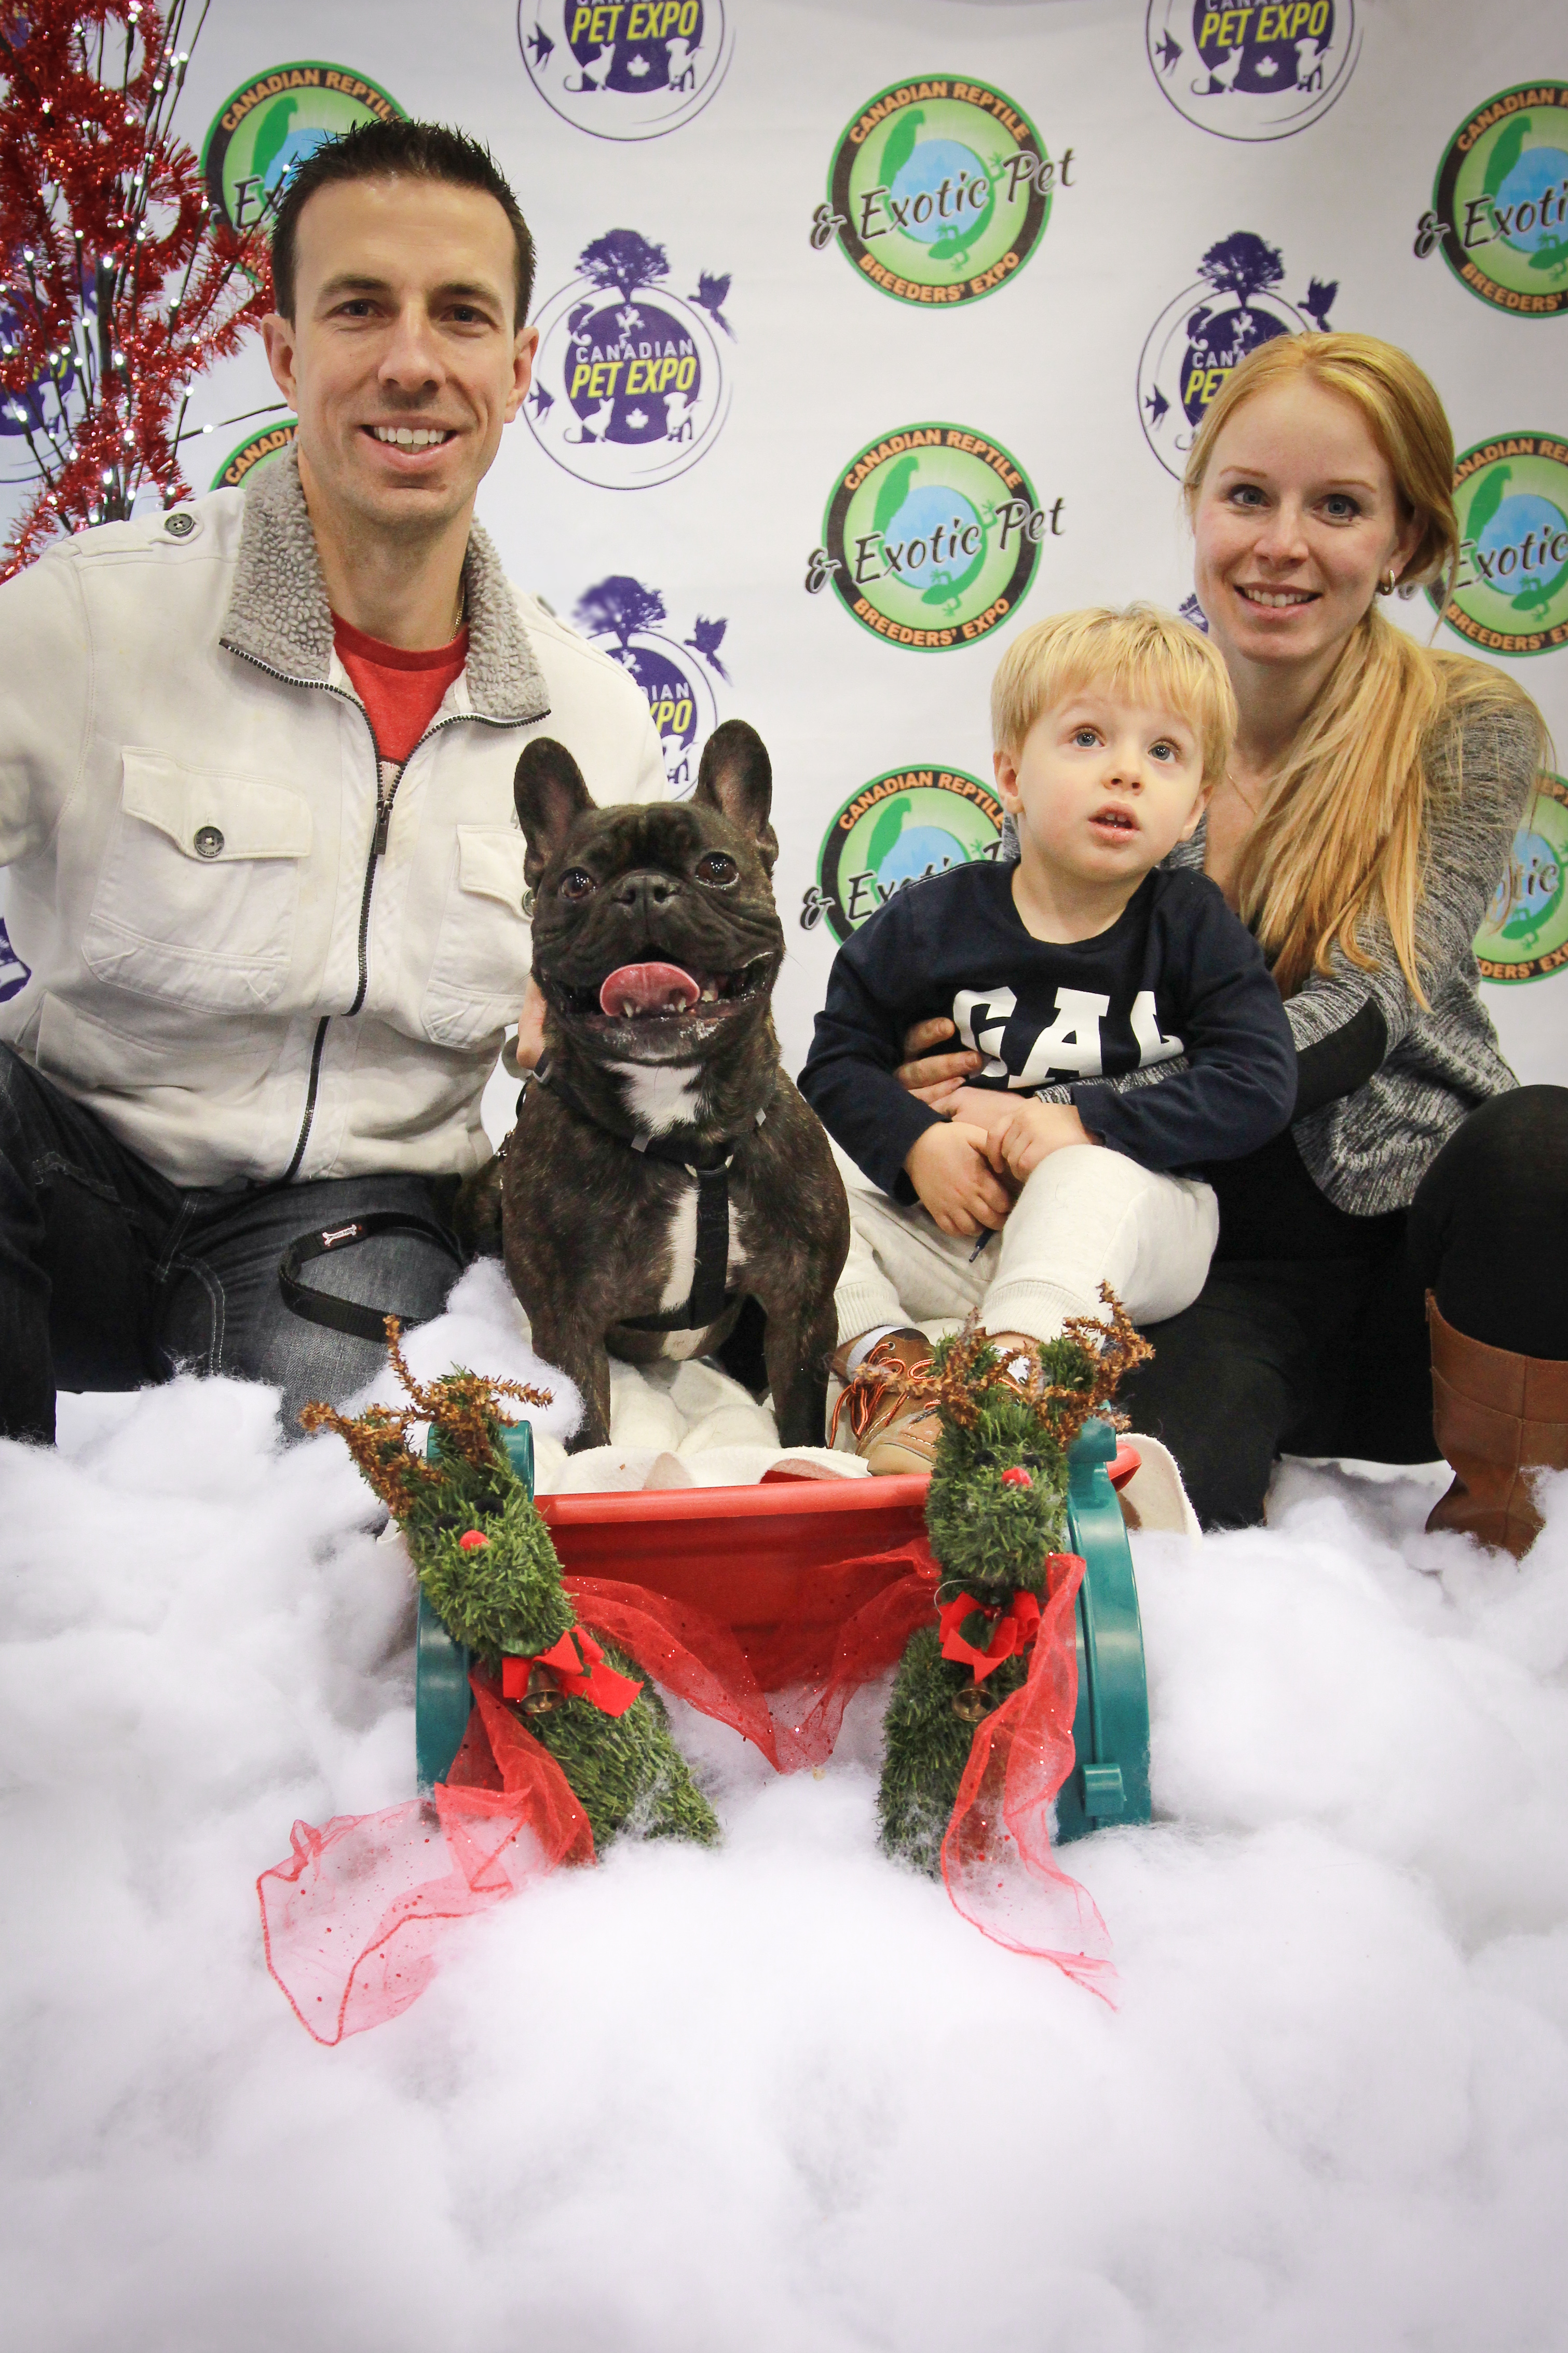 Christmas Pet Expo Scottsdale 2020 Cute Frenchie and family Christmas Pet Expo Day 2   Kid's Pet Club